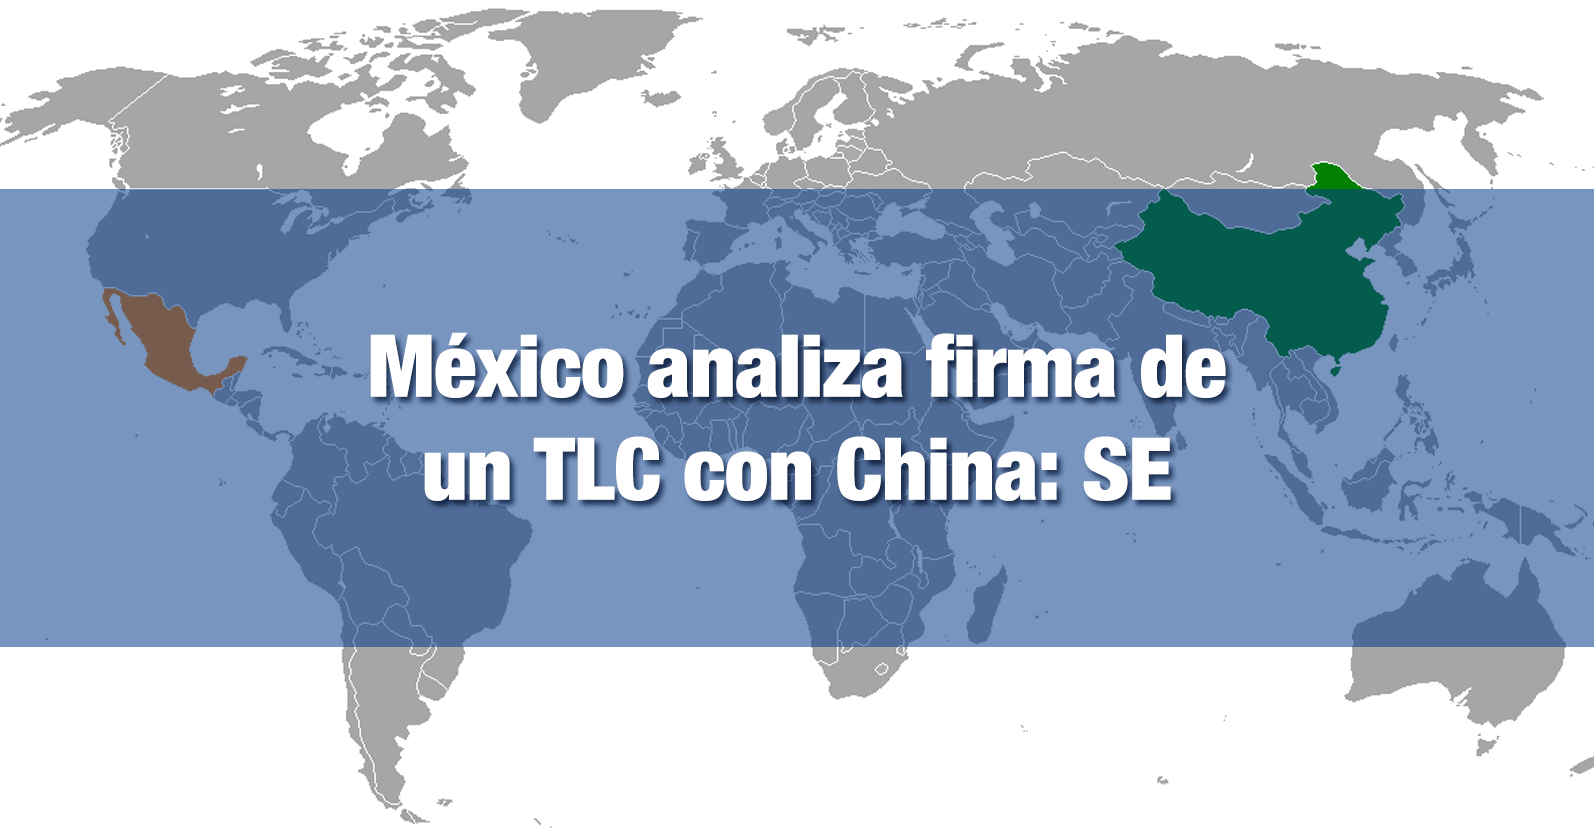 México analiza firma de un TLC con China: SE